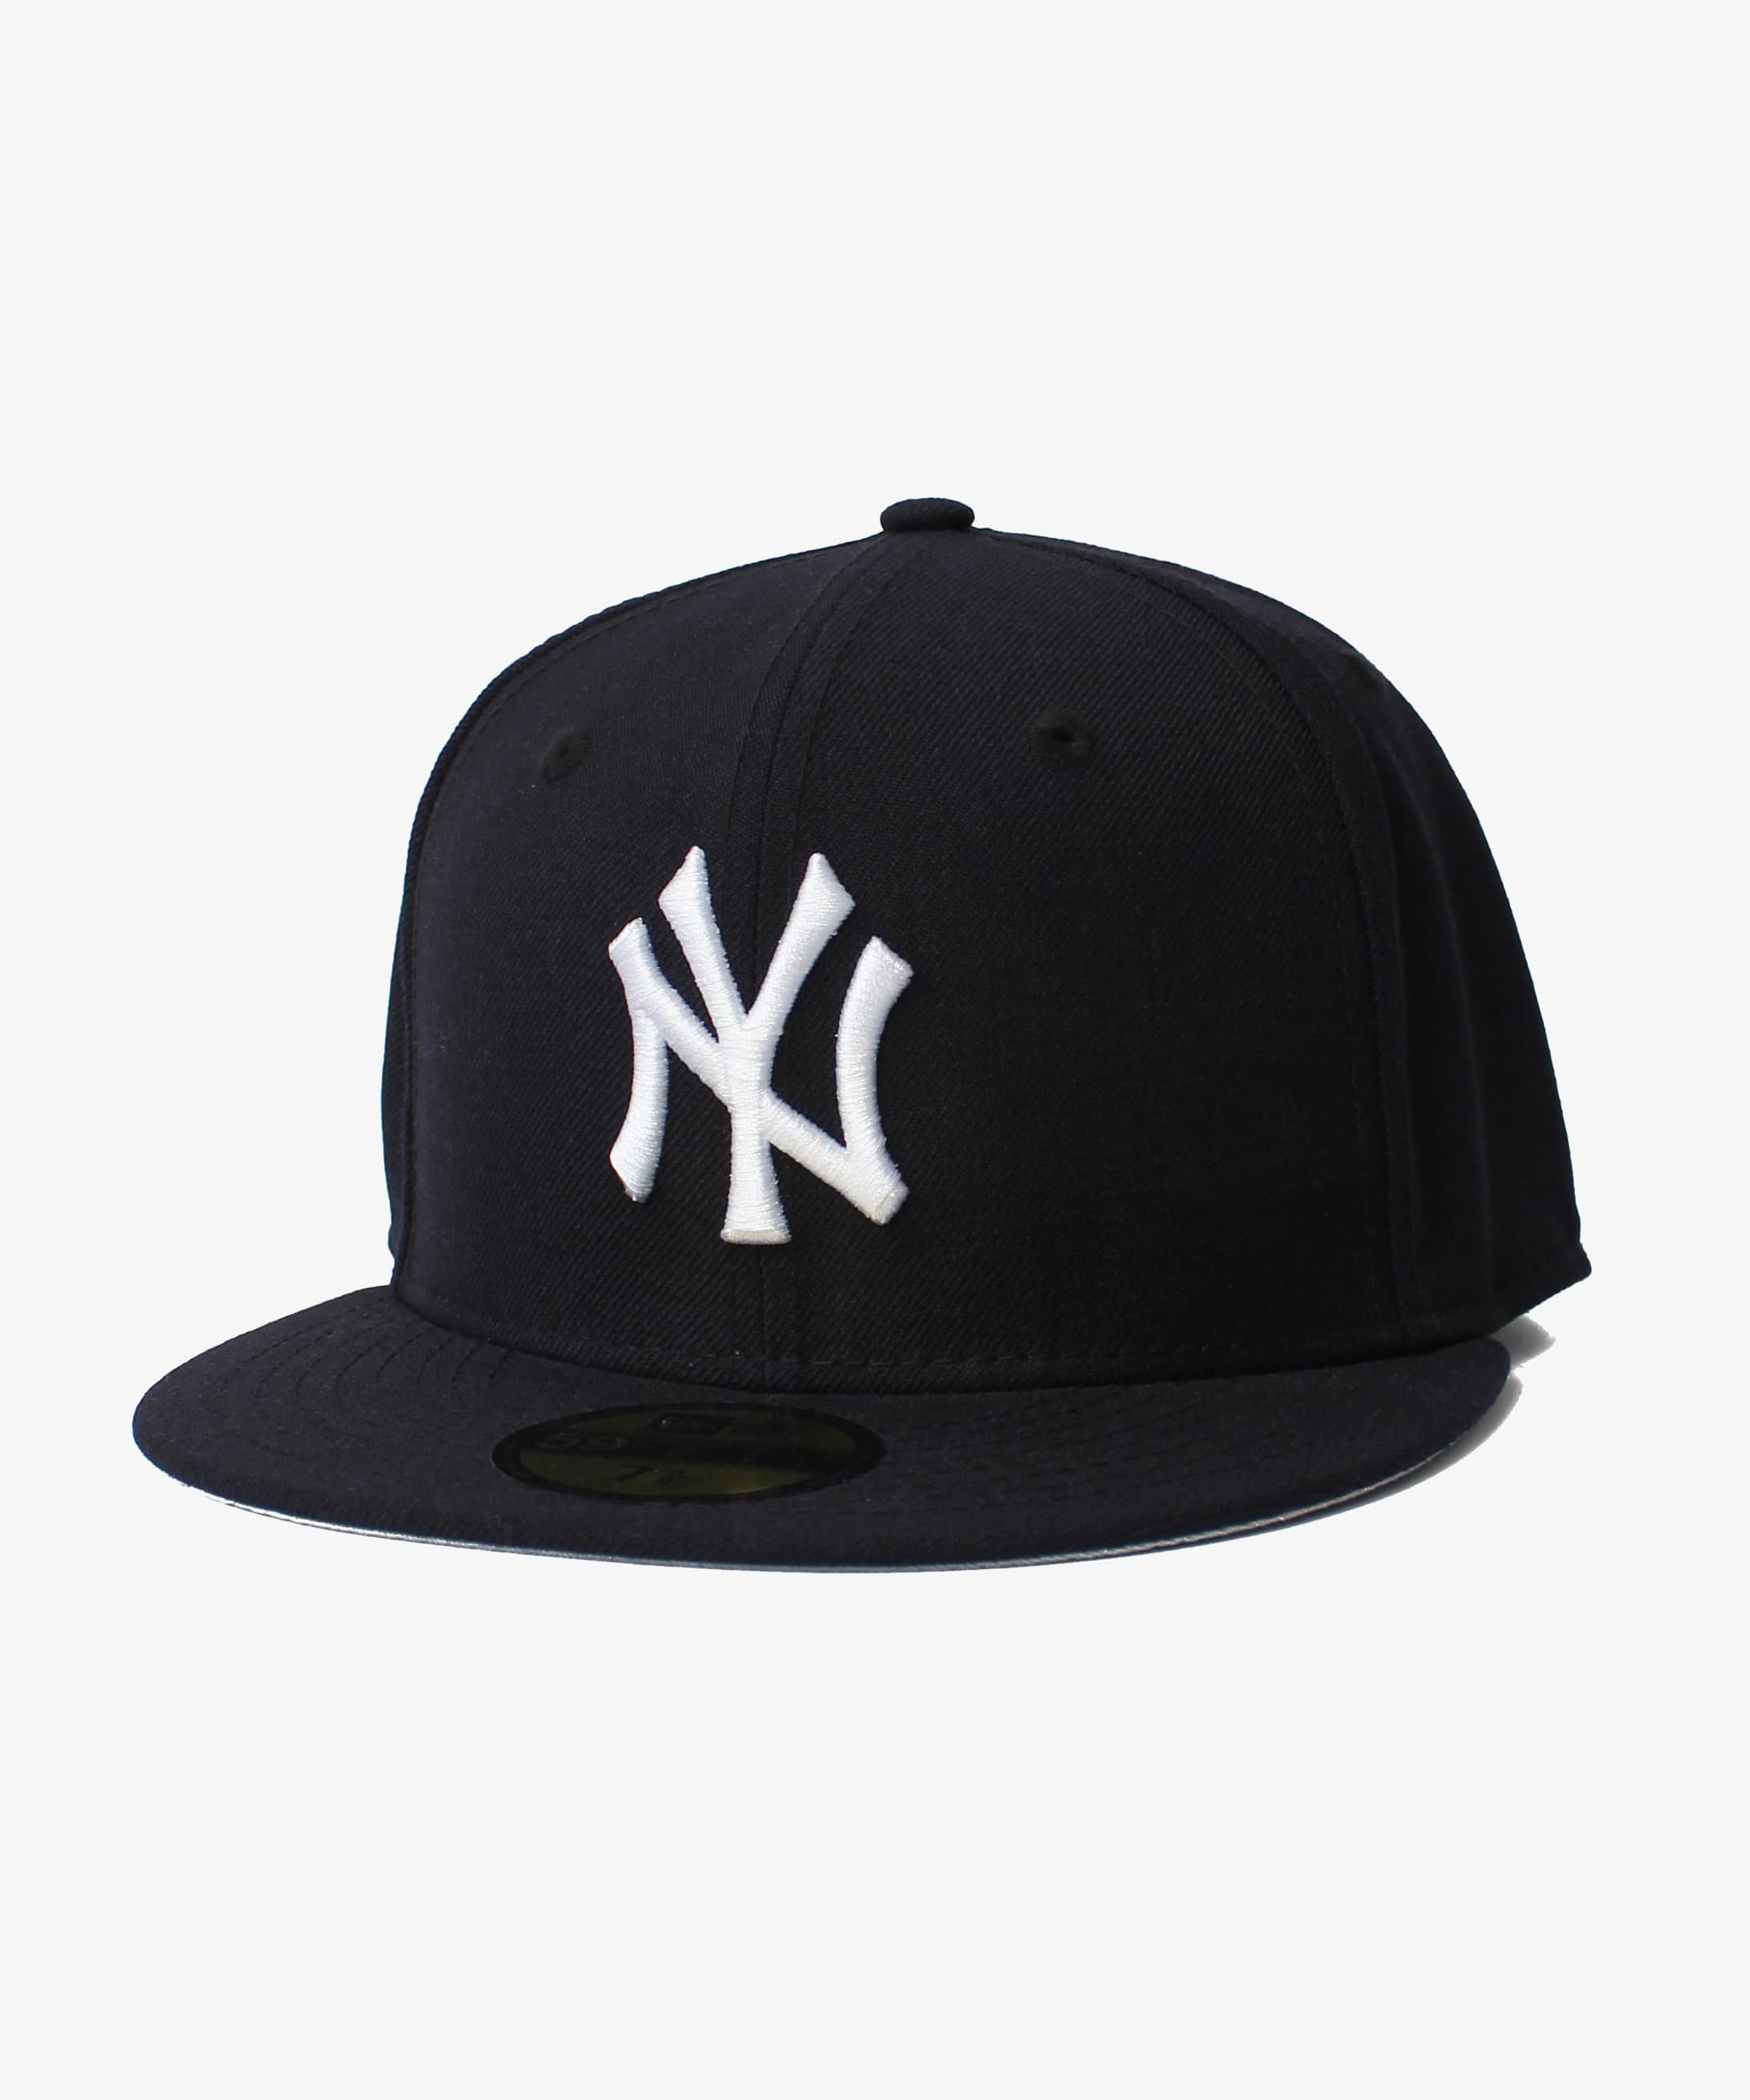 【取り寄せ】 NEW ERA 5950 NYY 1999-2006 GM